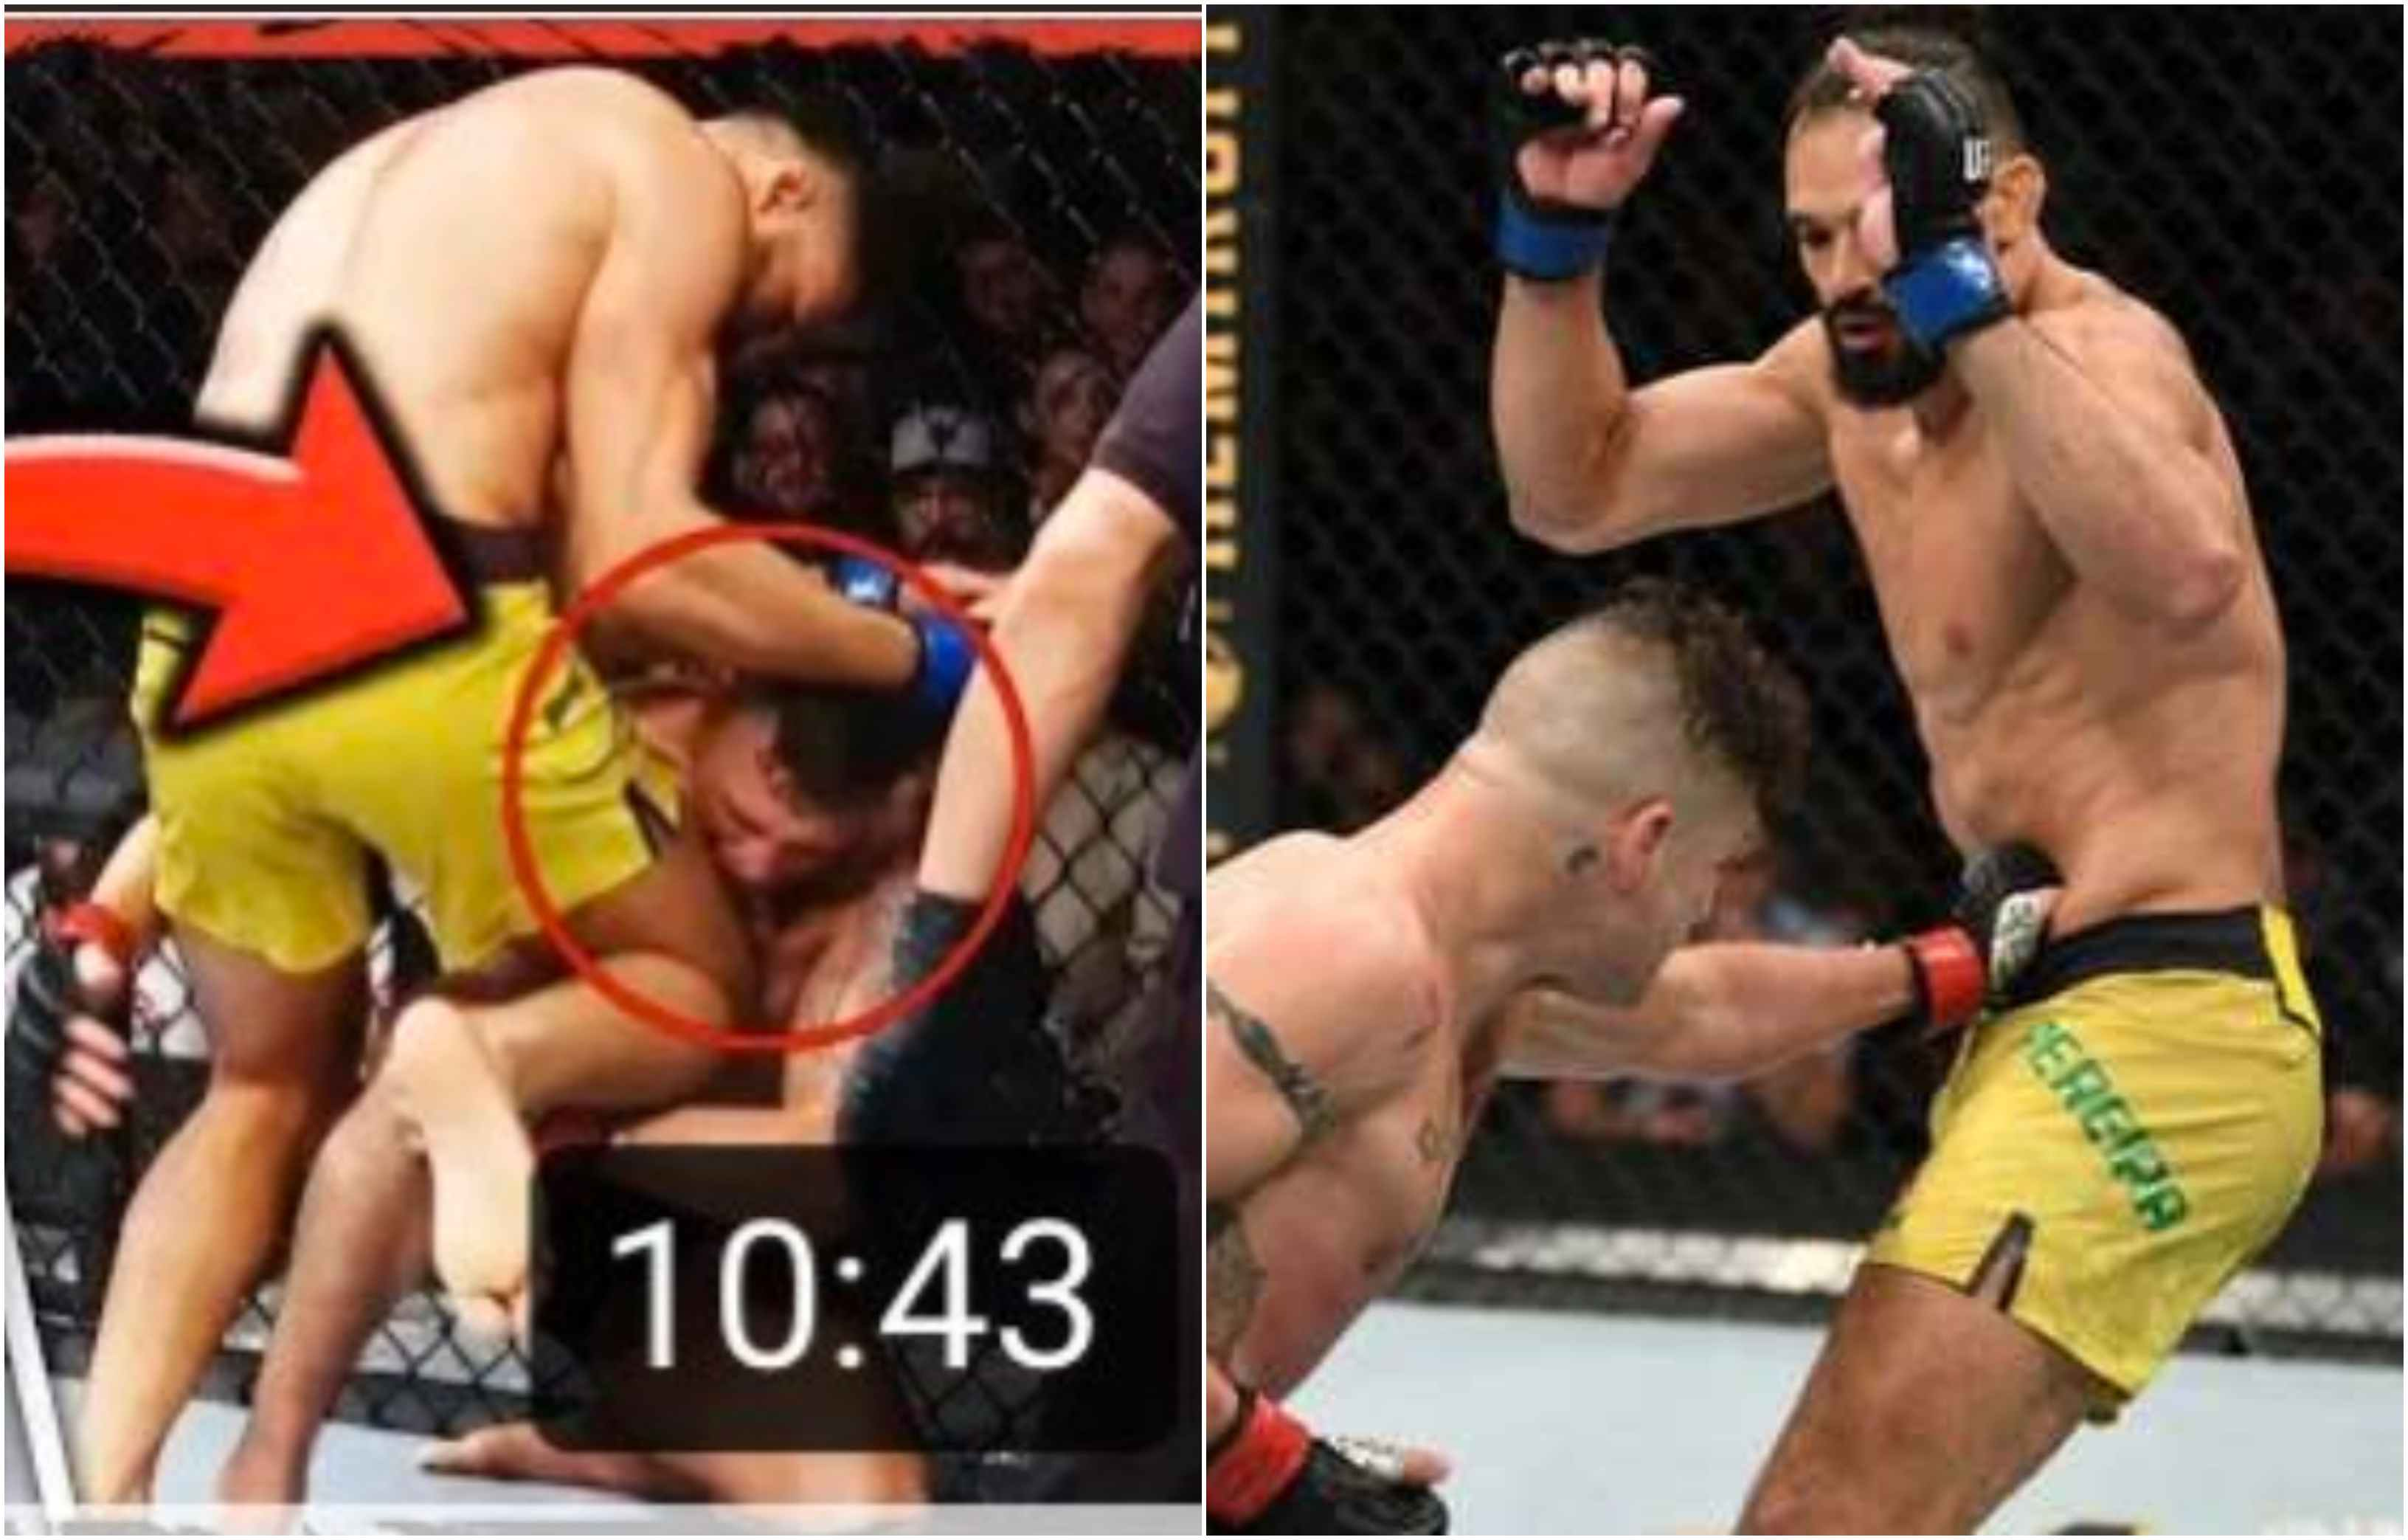 UFC News: Michel Pereira provides photo evidence that his 'illegal' knee on Diego Sanchez didn't land - Pereira